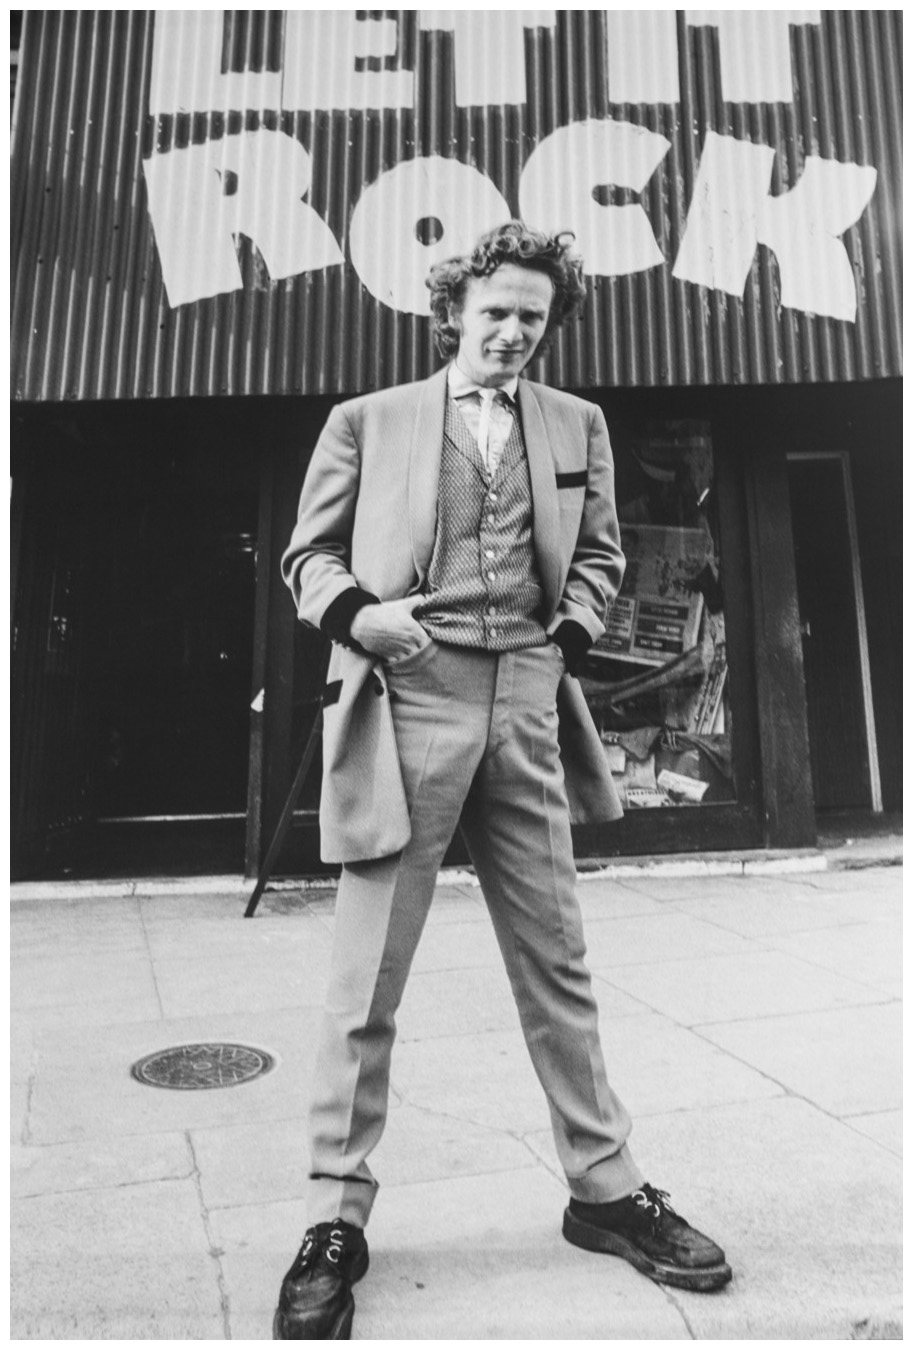 the early life and times of malcolm robert andrew mclaren Malcolm robert andrew mclaren early years mclaren was born on 22 january 1946 followed in 2007 by malcolm mclaren's life and times in la.